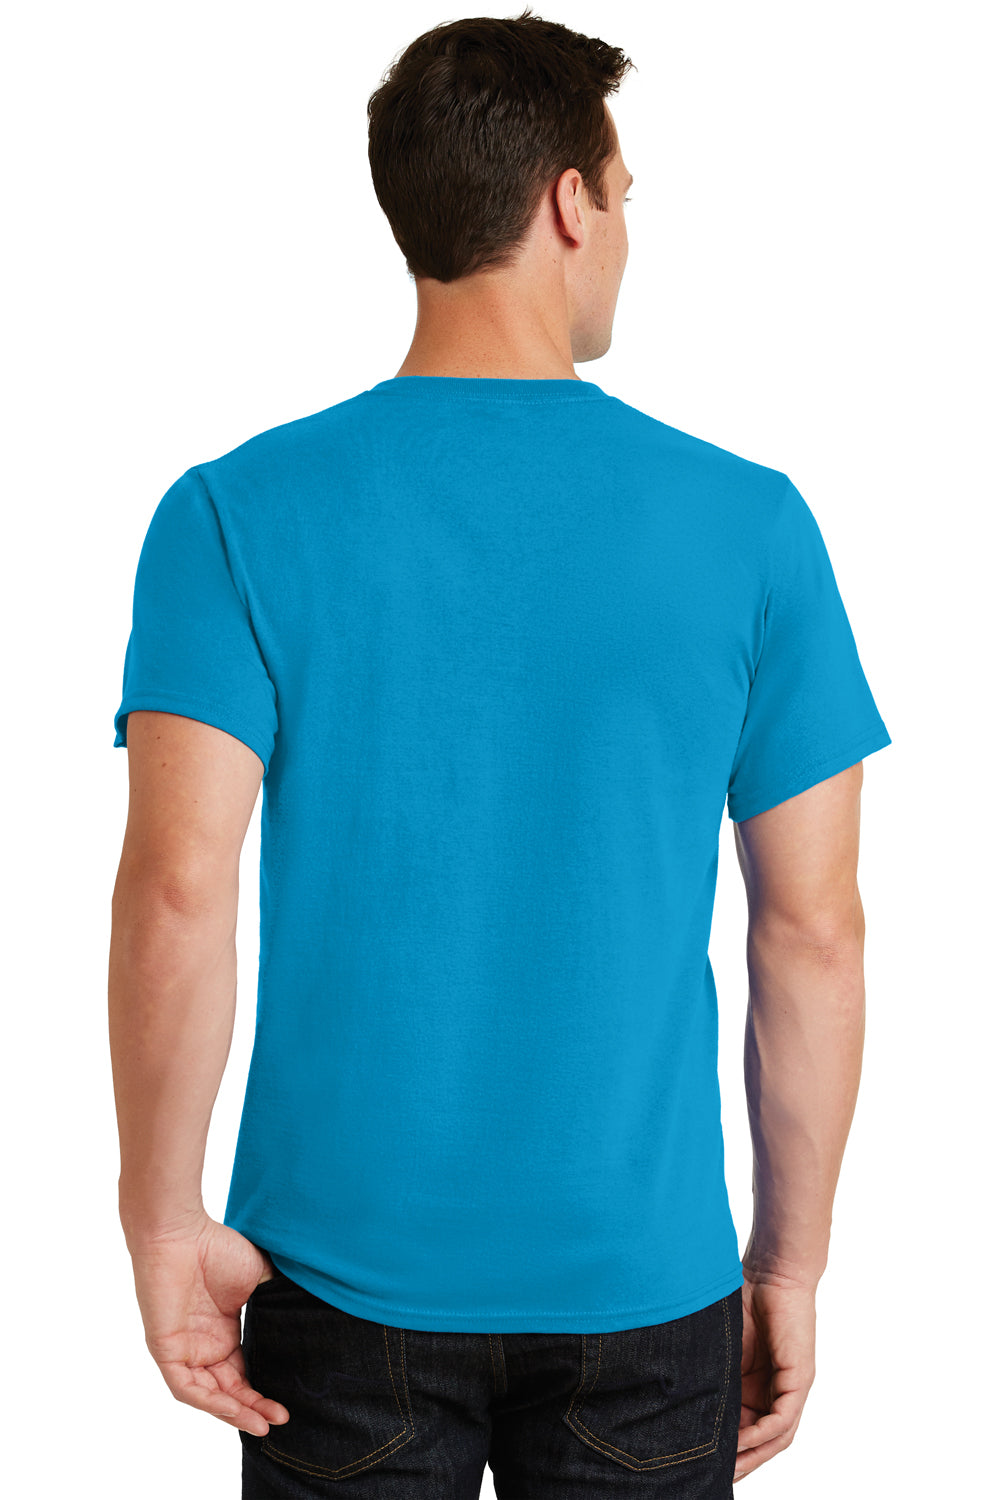 Port & Company PC61 Mens Essential Short Sleeve Crewneck T-Shirt Turquoise Blue Back